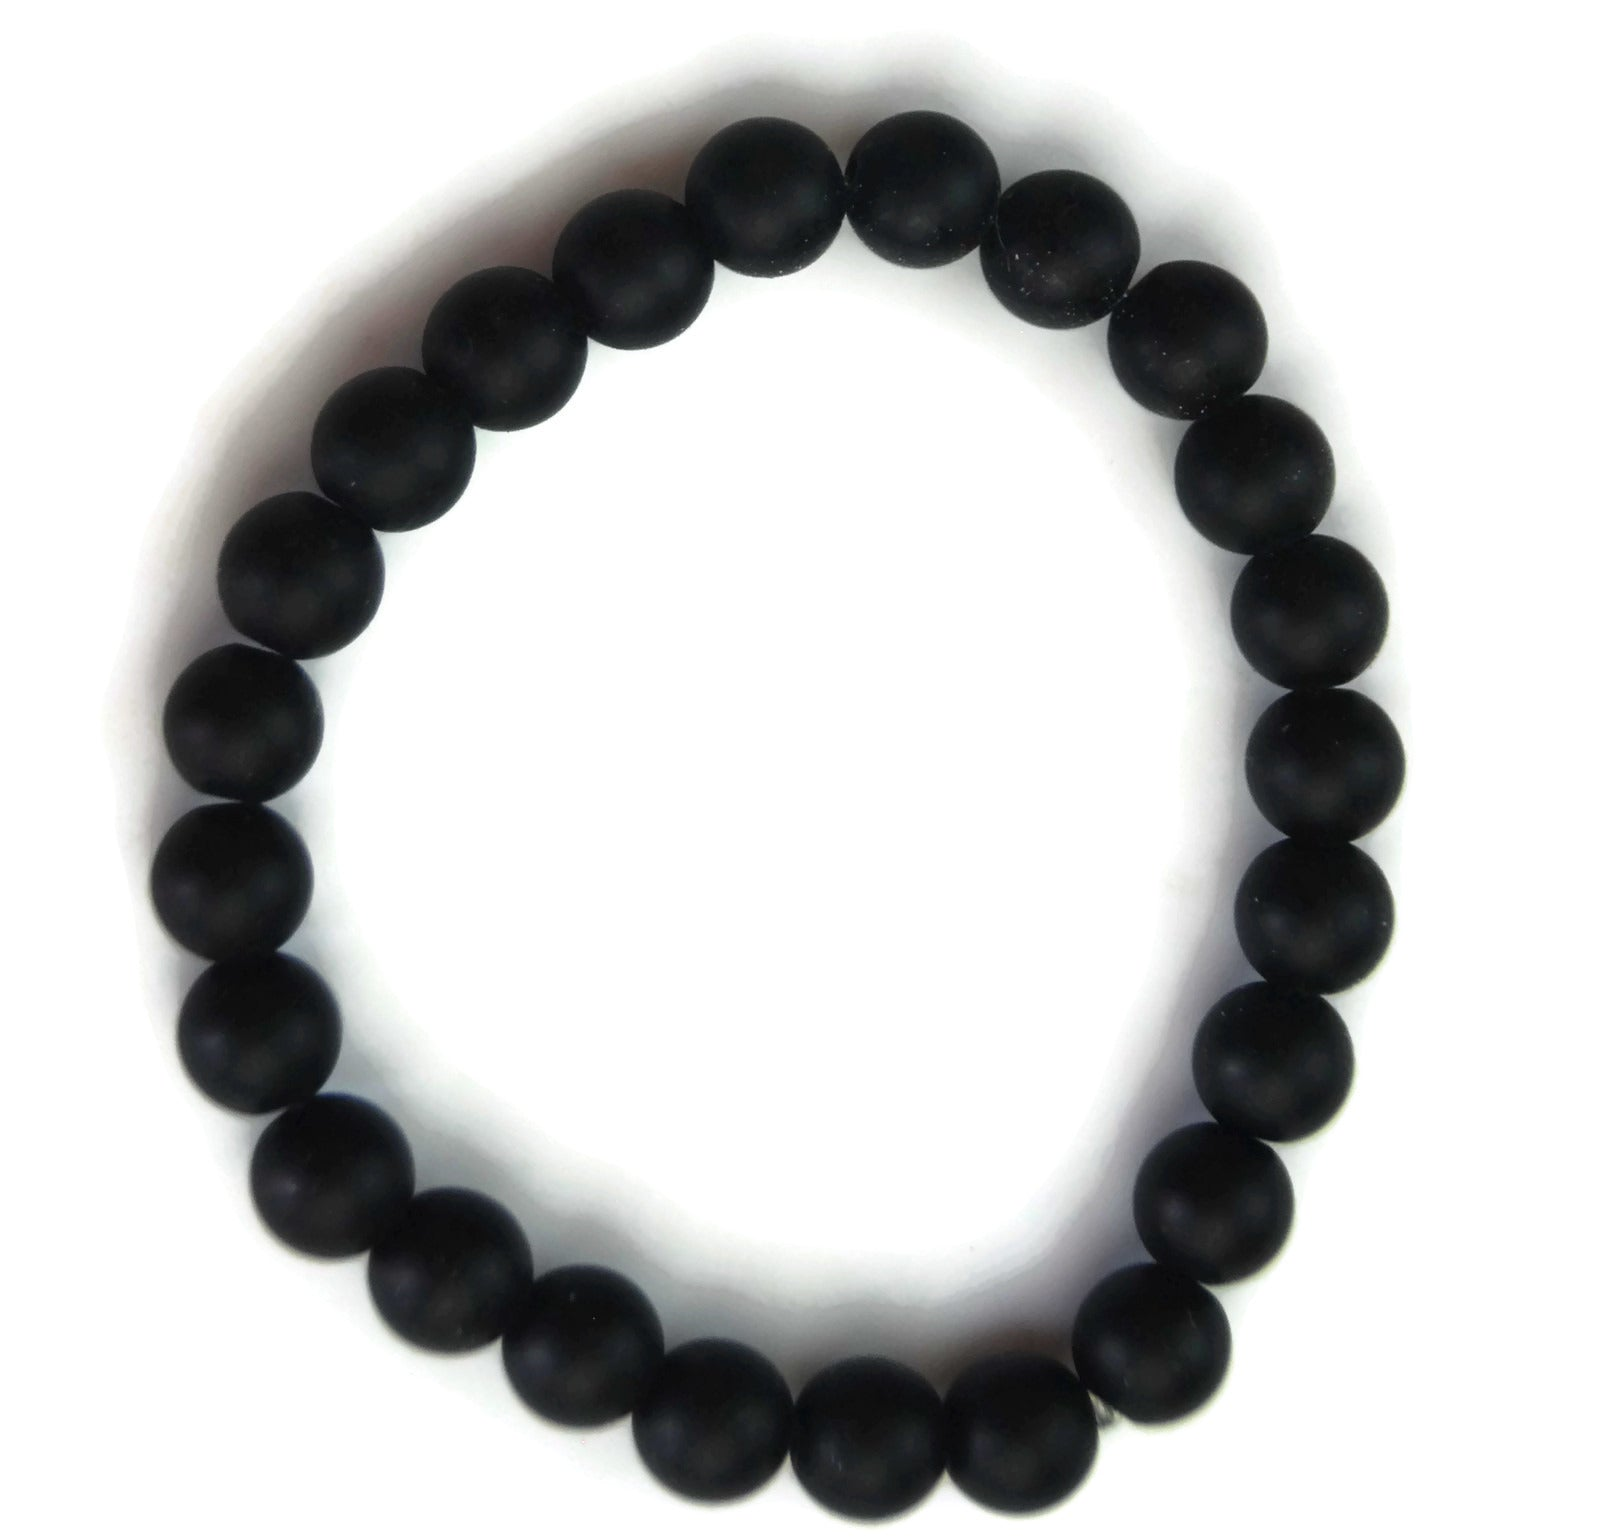 bracelets stretchy product delivery necklace stetchy bracelet stretch black crystal beaded wrap free around